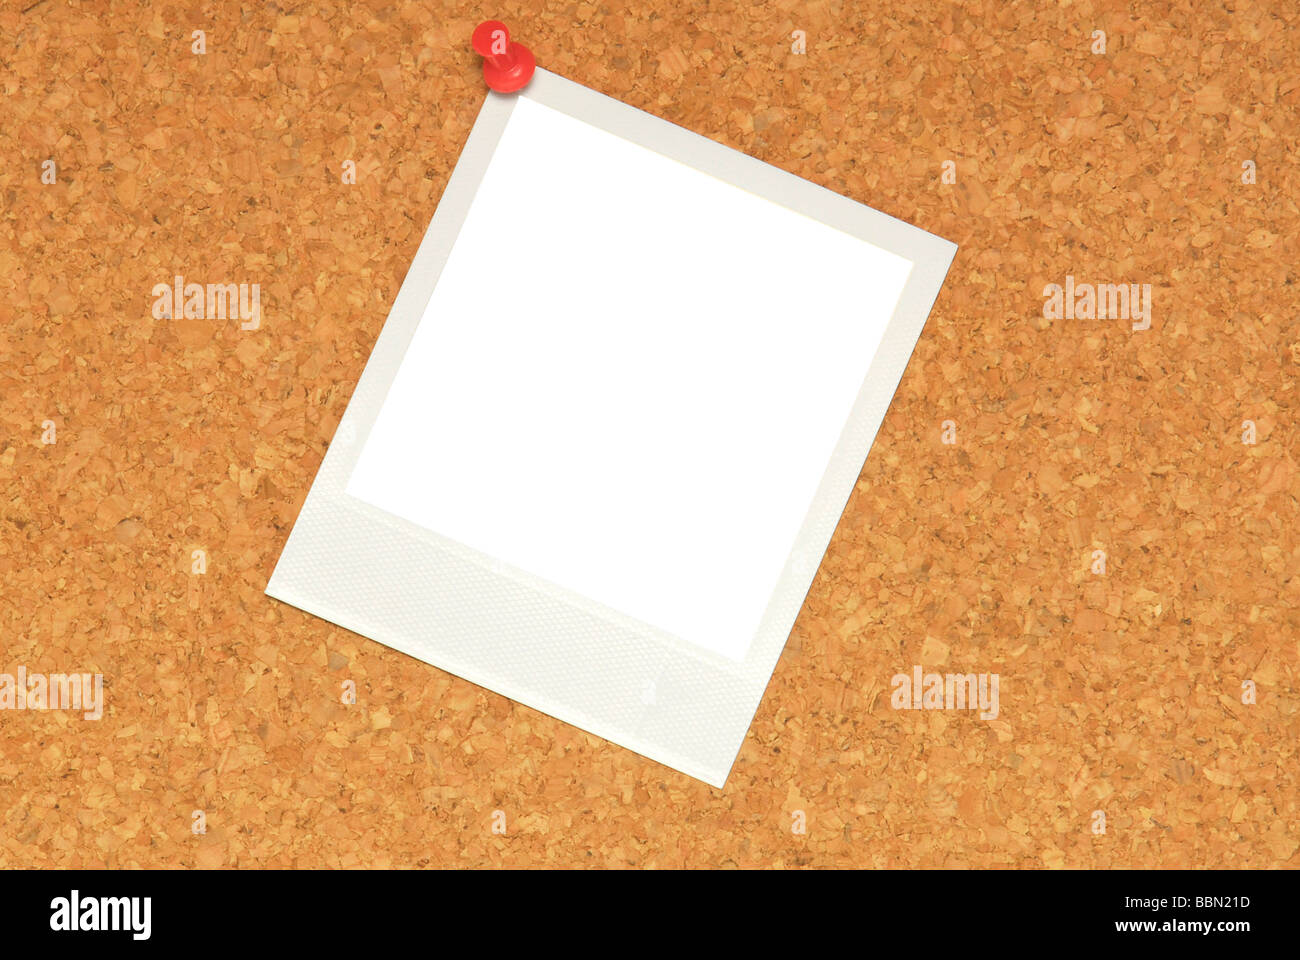 Pinnwand Kork Pinnwand Kork Stock Photos Pinnwand Kork Stock Images Alamy